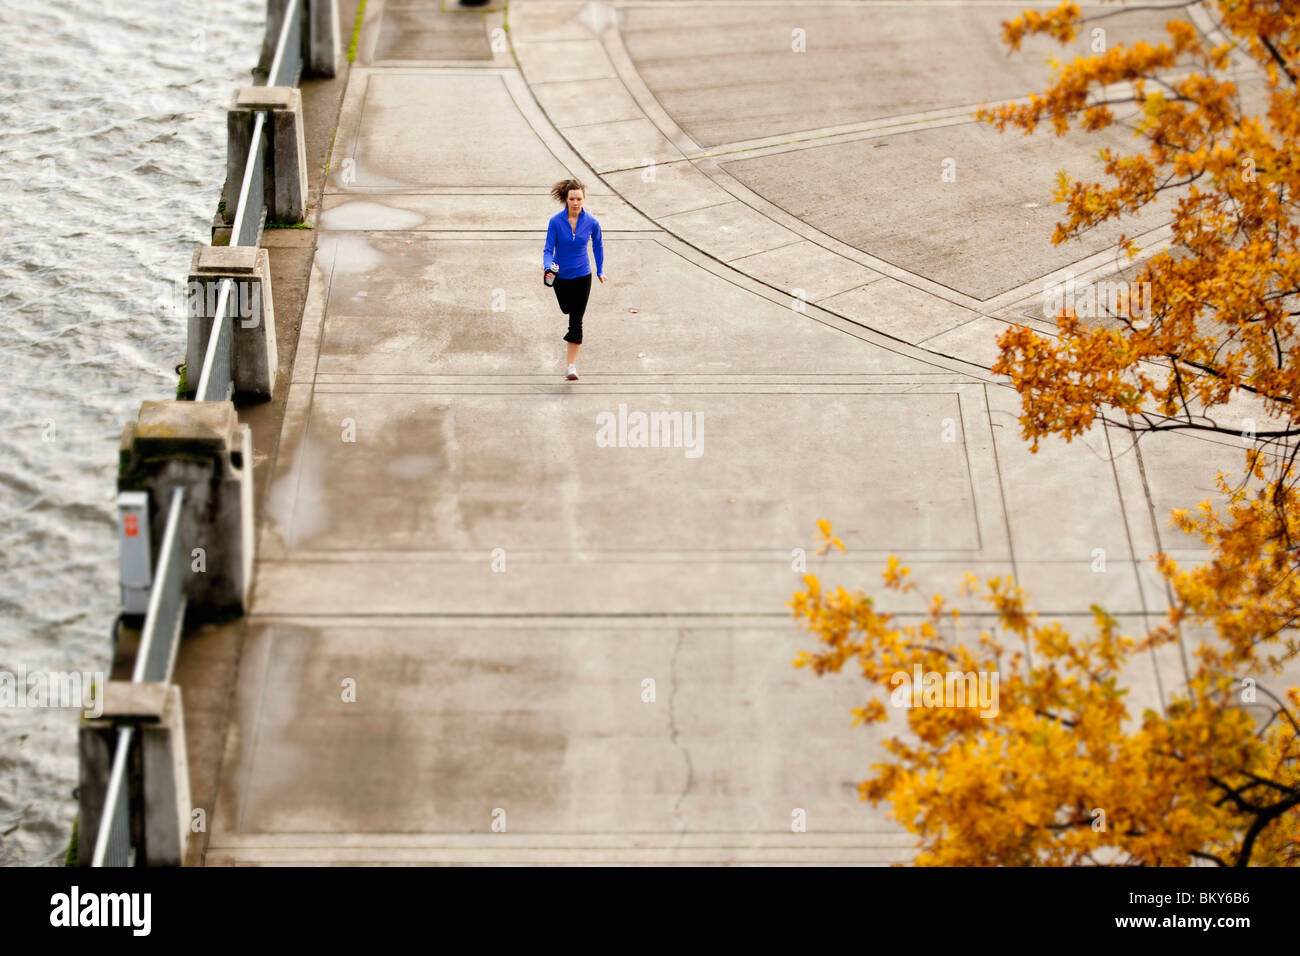 An athletic female in a blue jacket jogging along the Portland, Oregon waterfront. - Stock Image